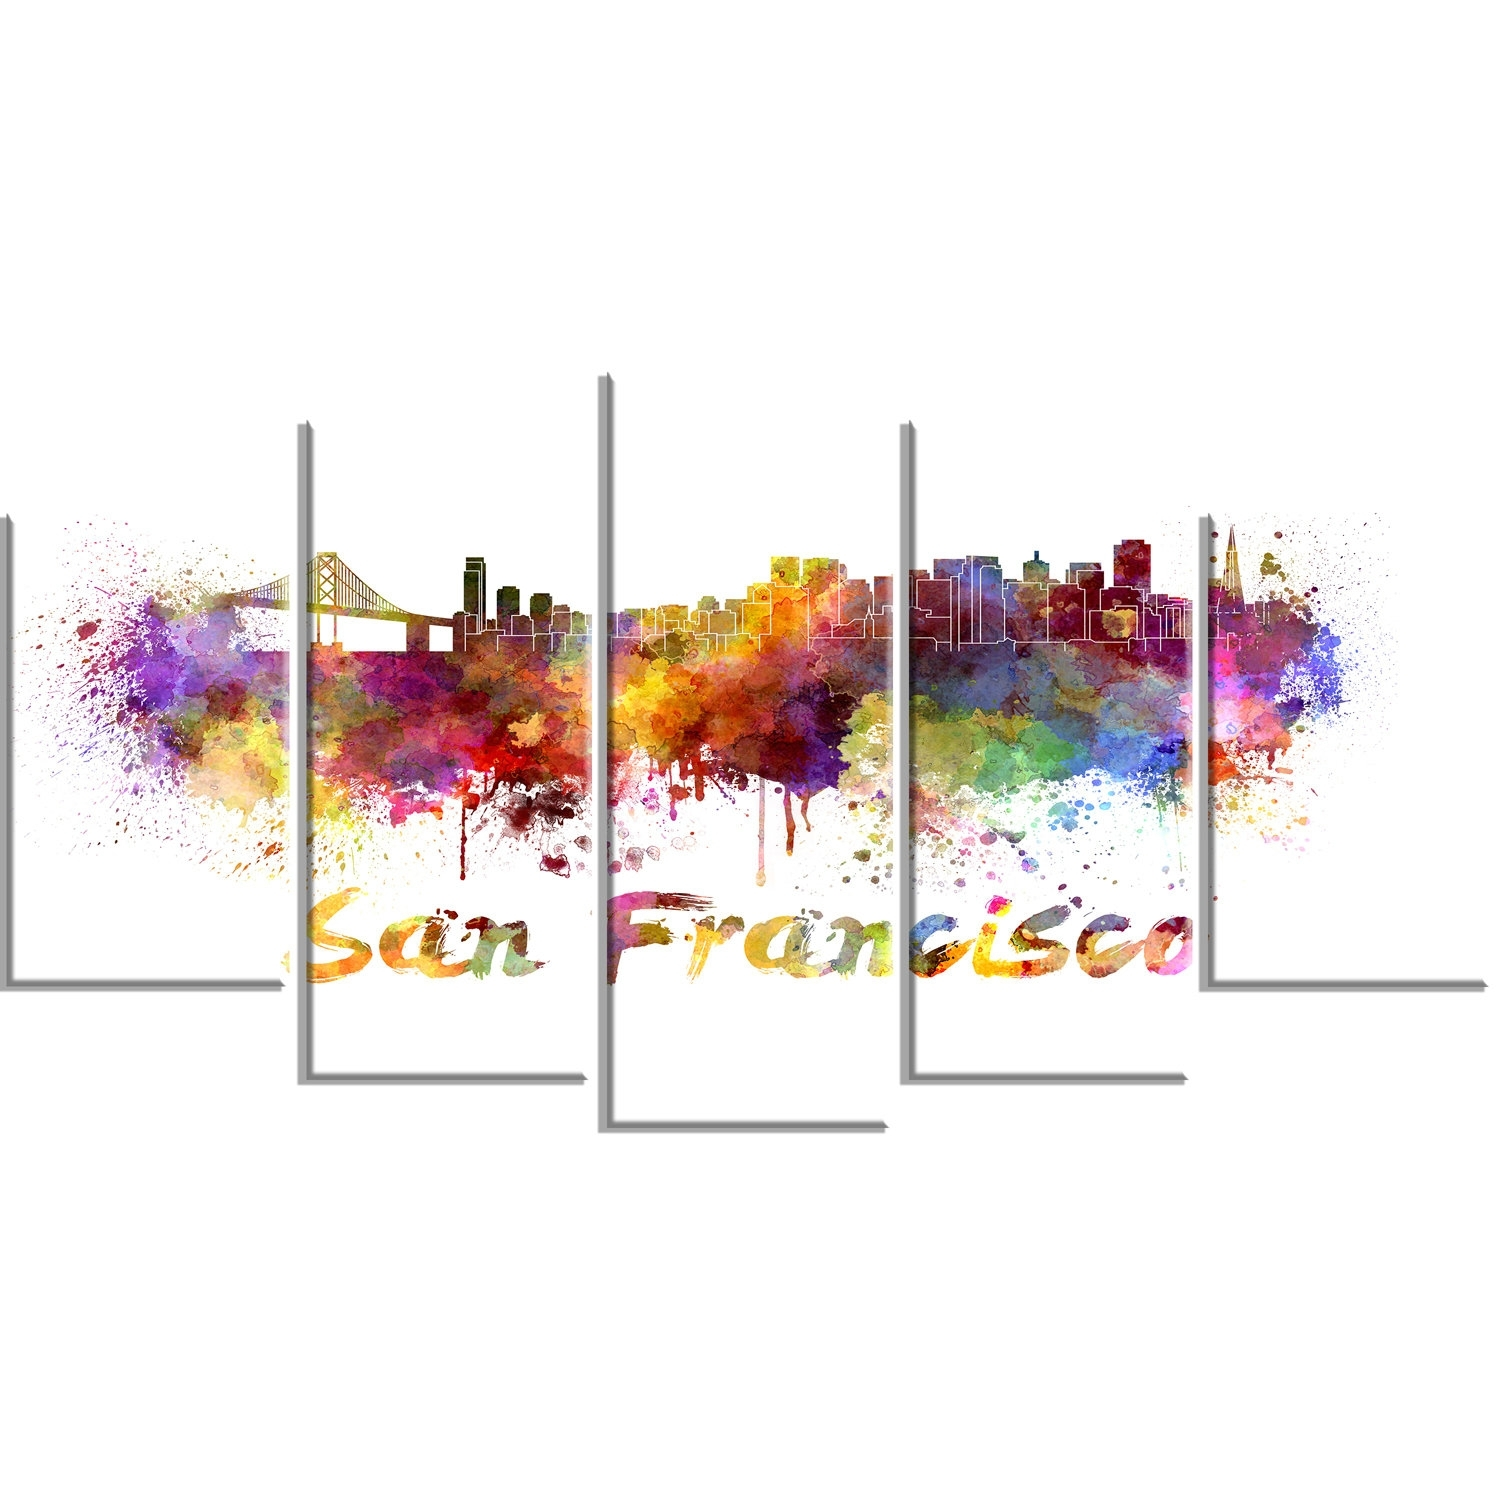 Designart 'san Francisco Skyline' 5 Piece Wall Art On Wrapped Canvas With Regard To San Francisco Wall Art (View 12 of 20)